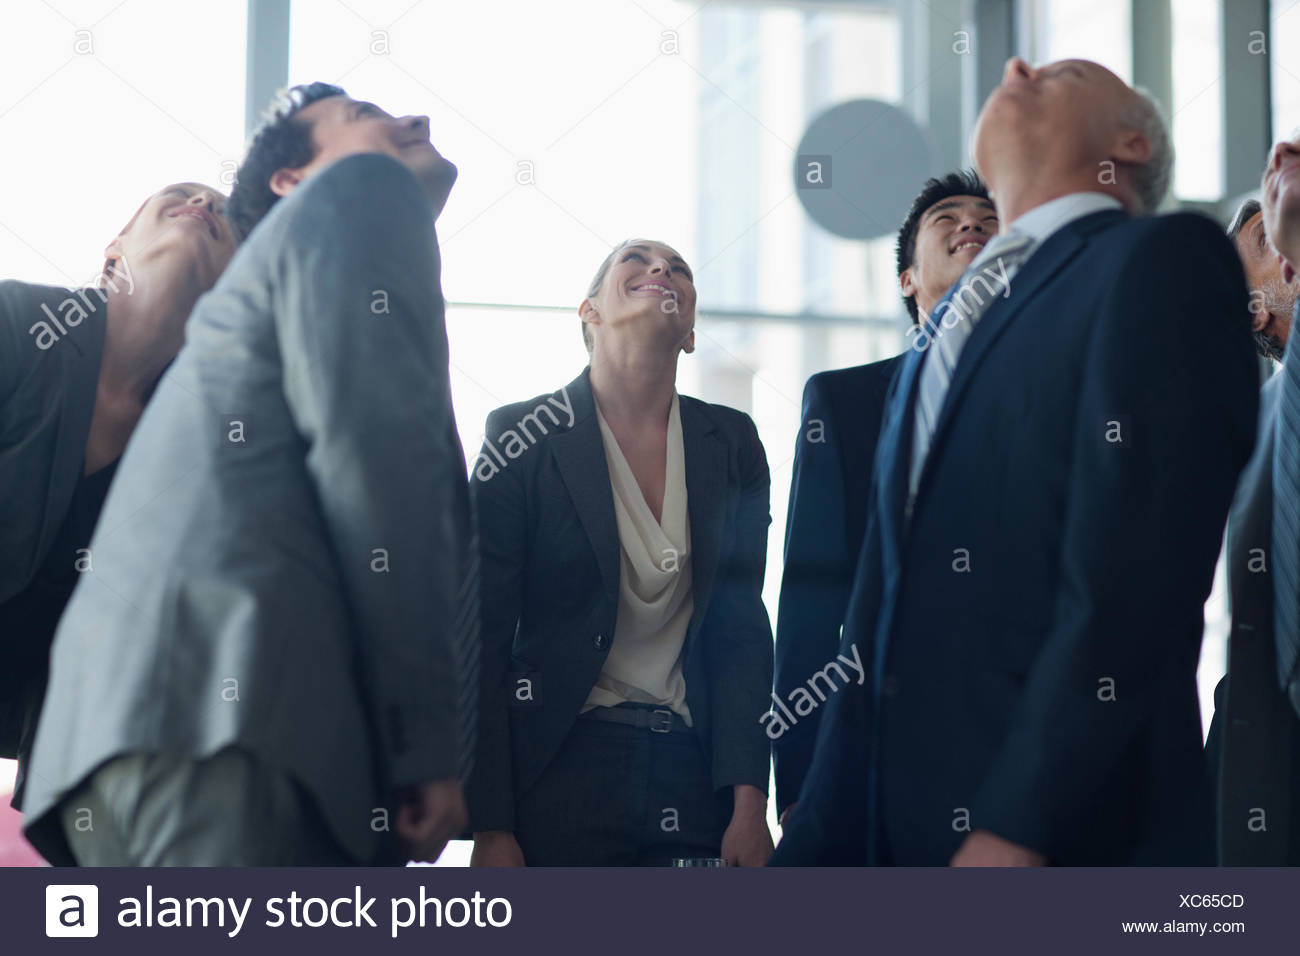 Business people looking up in lobby - Stock Image